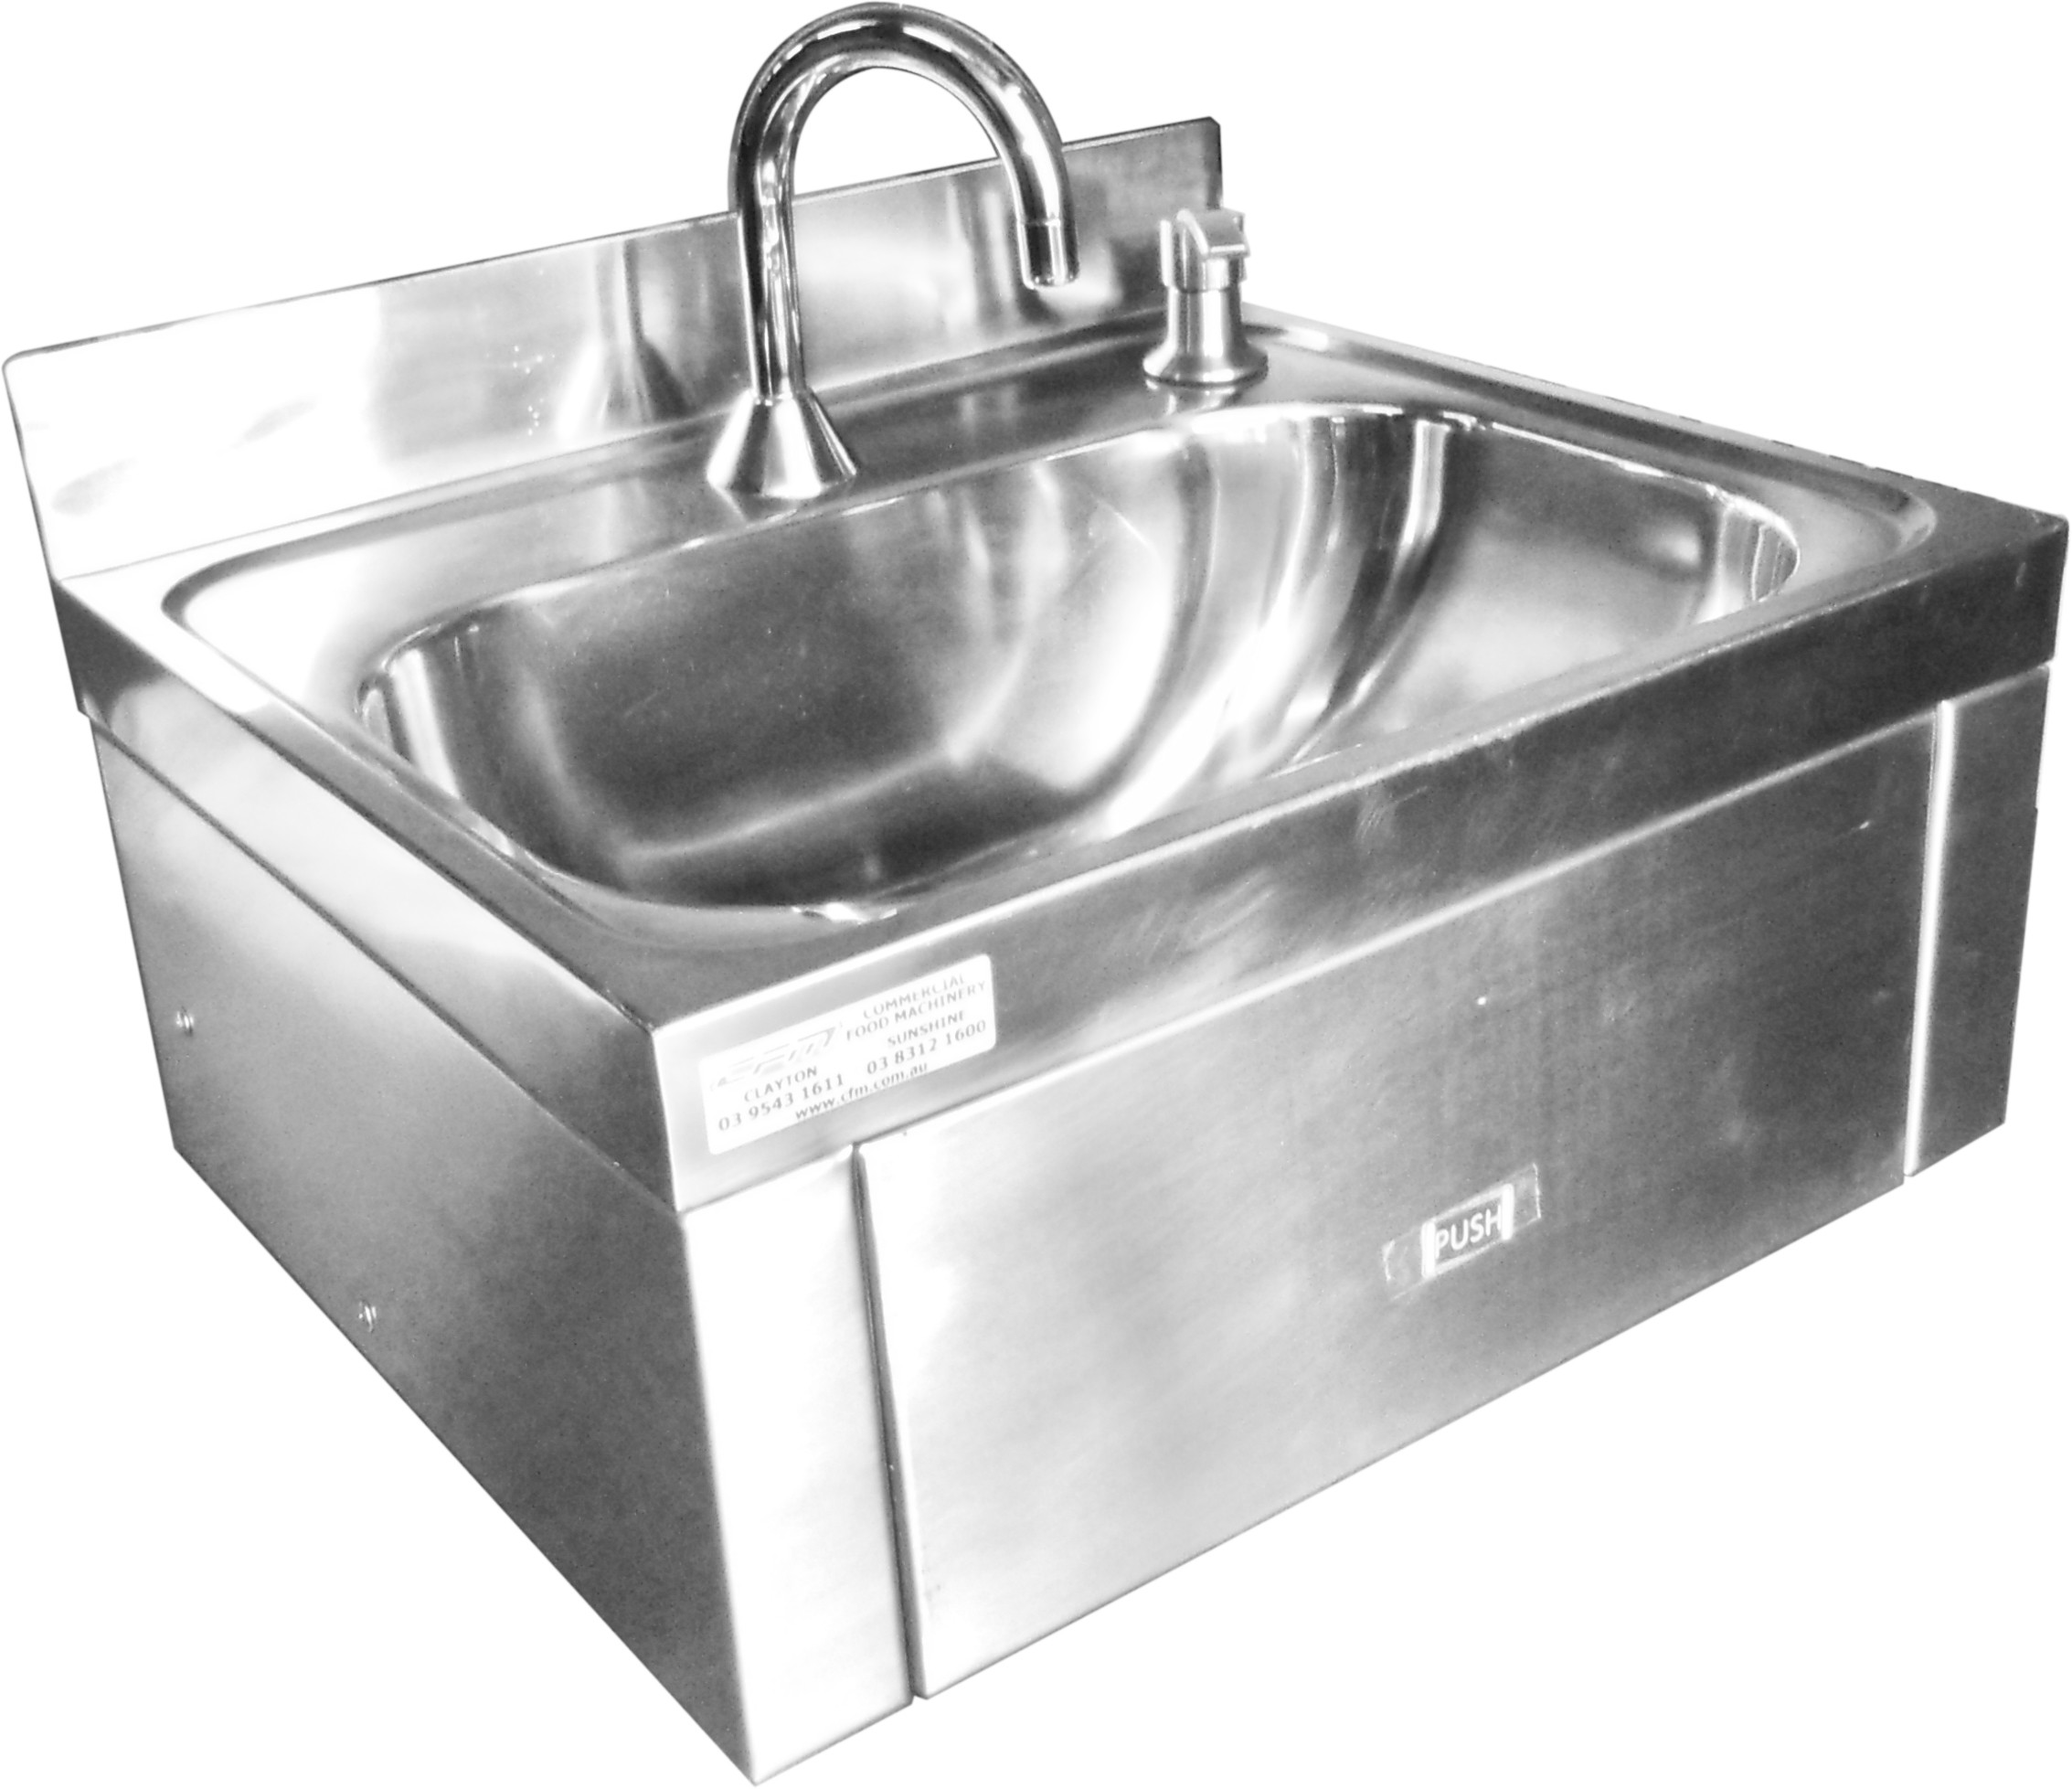 Master Flow Tapware Knee Operated Hands Free Sink